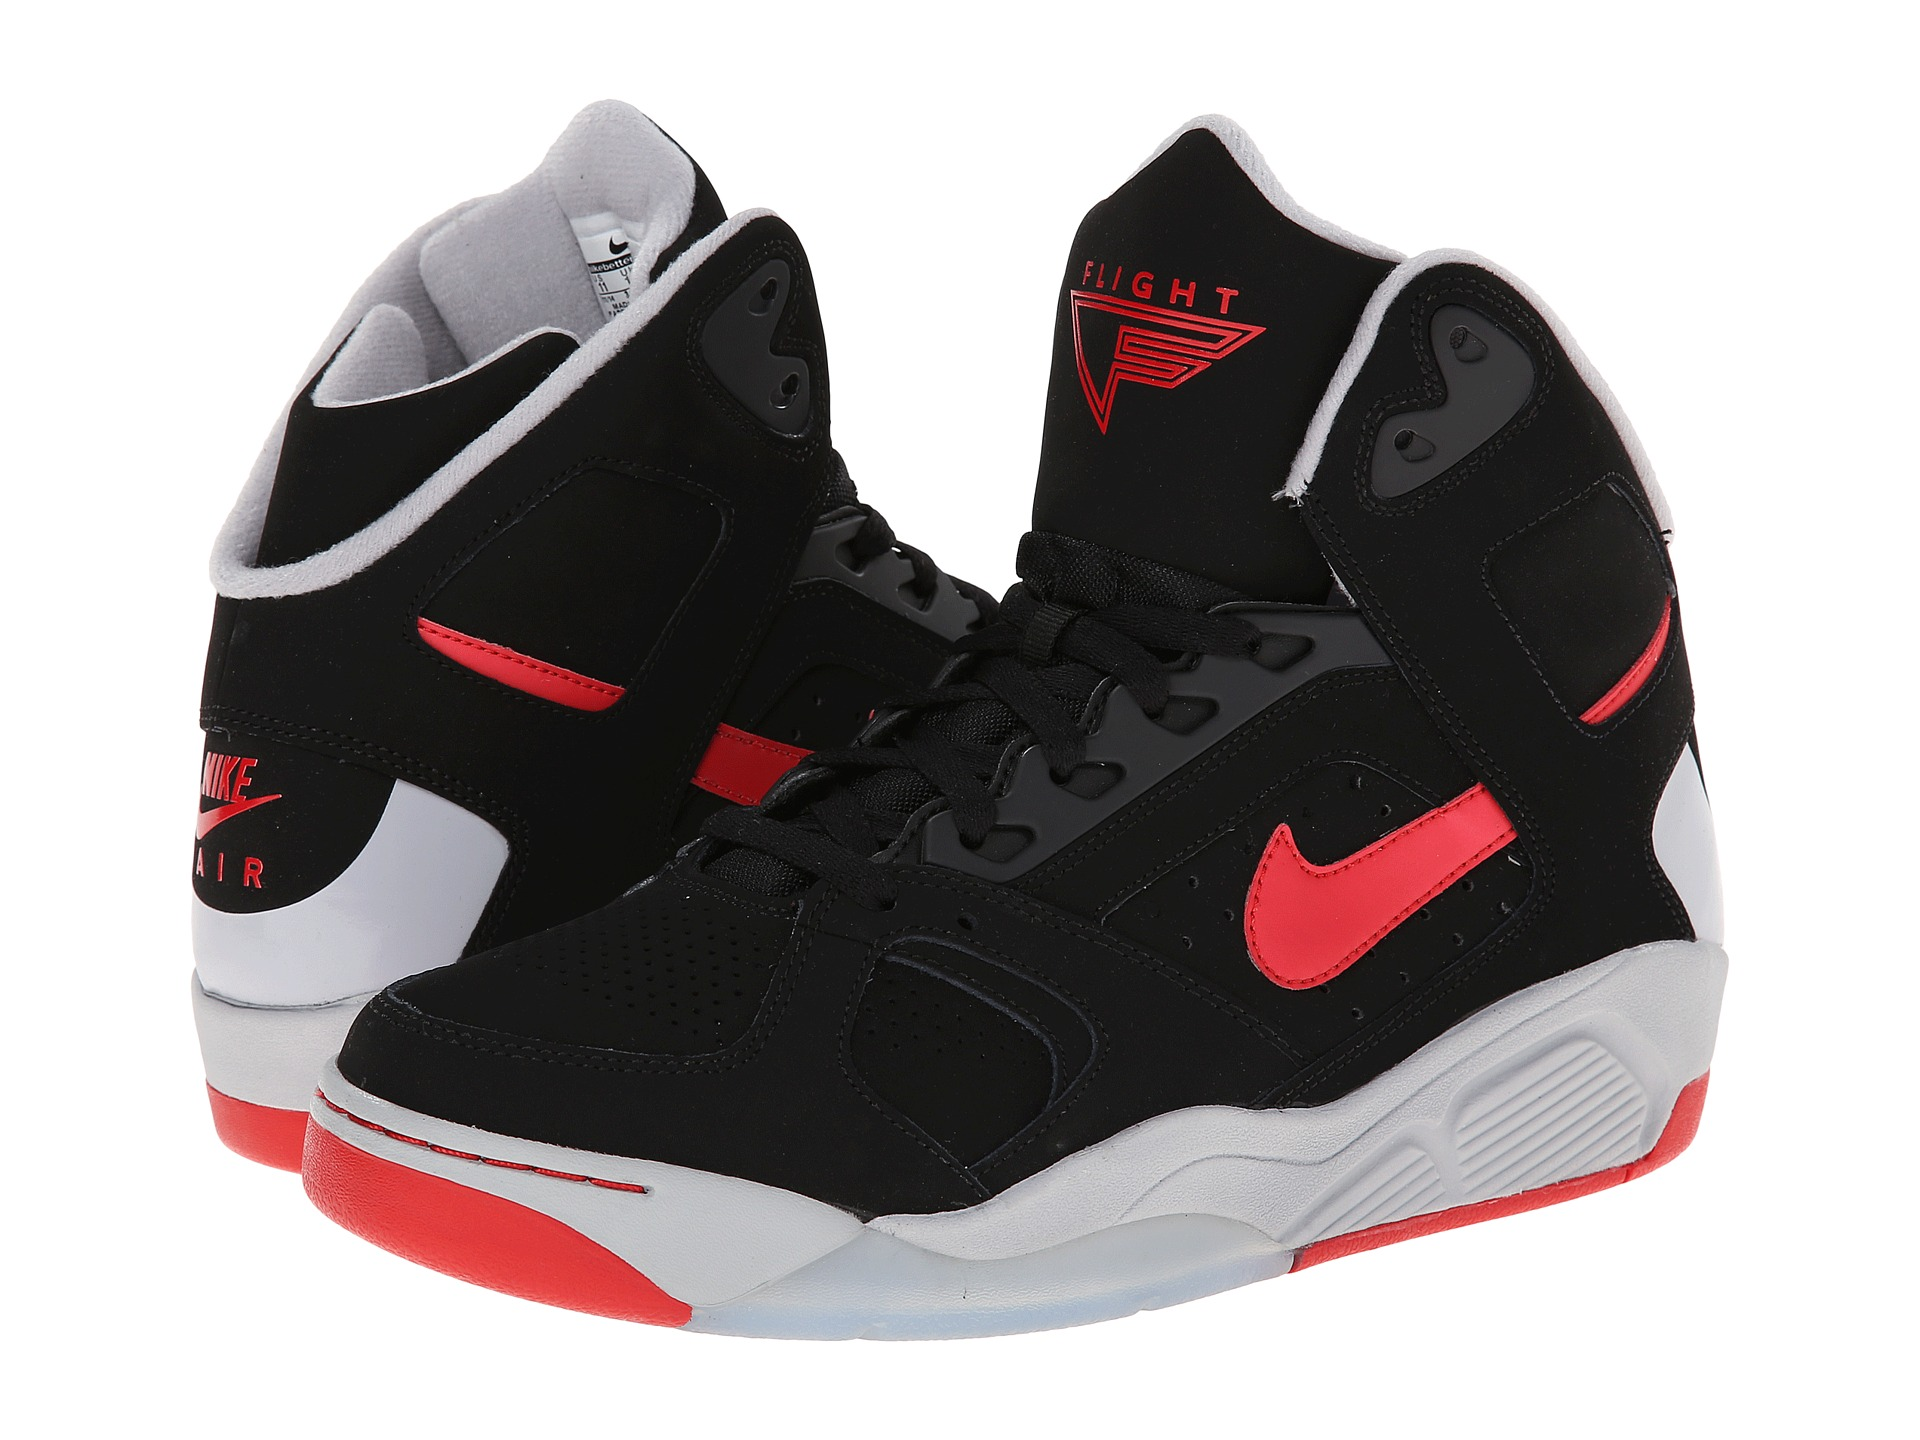 nike air flight lite high black wolf grey university red shipped free at zappos. Black Bedroom Furniture Sets. Home Design Ideas